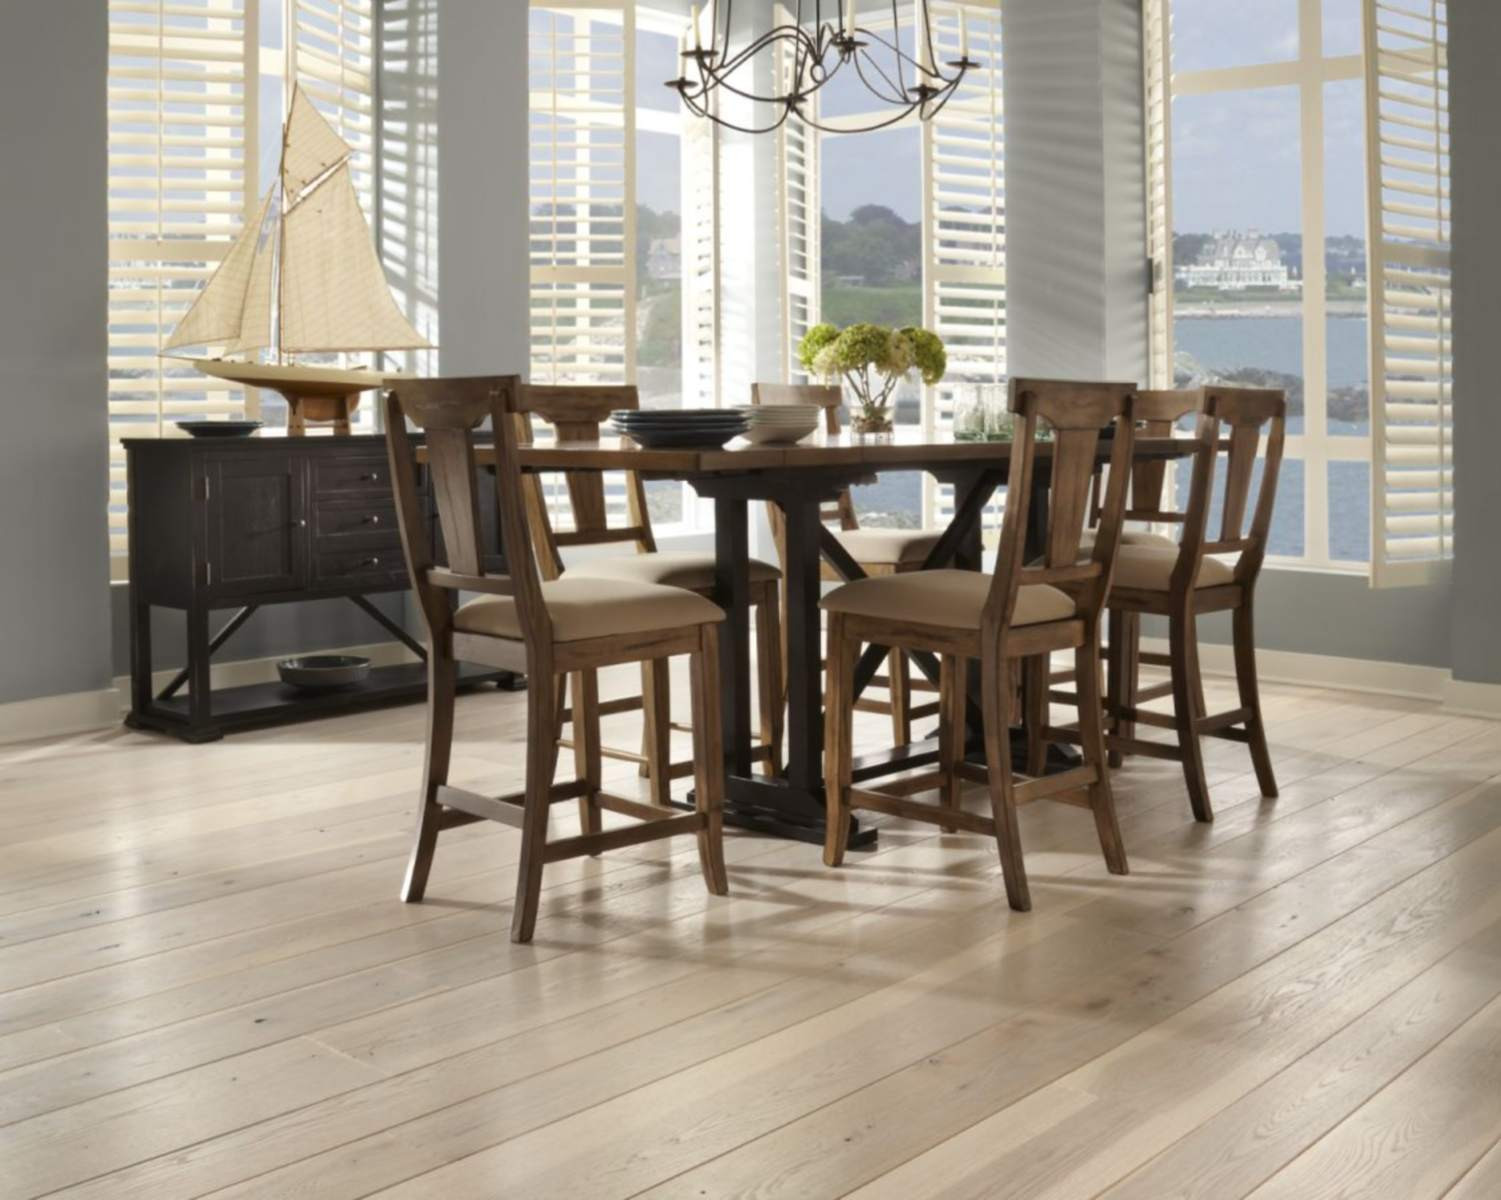 wide plank maple hardwood flooring of top 5 brands for solid hardwood flooring with regard to a dining room with carlisle hickorys wide plank flooring